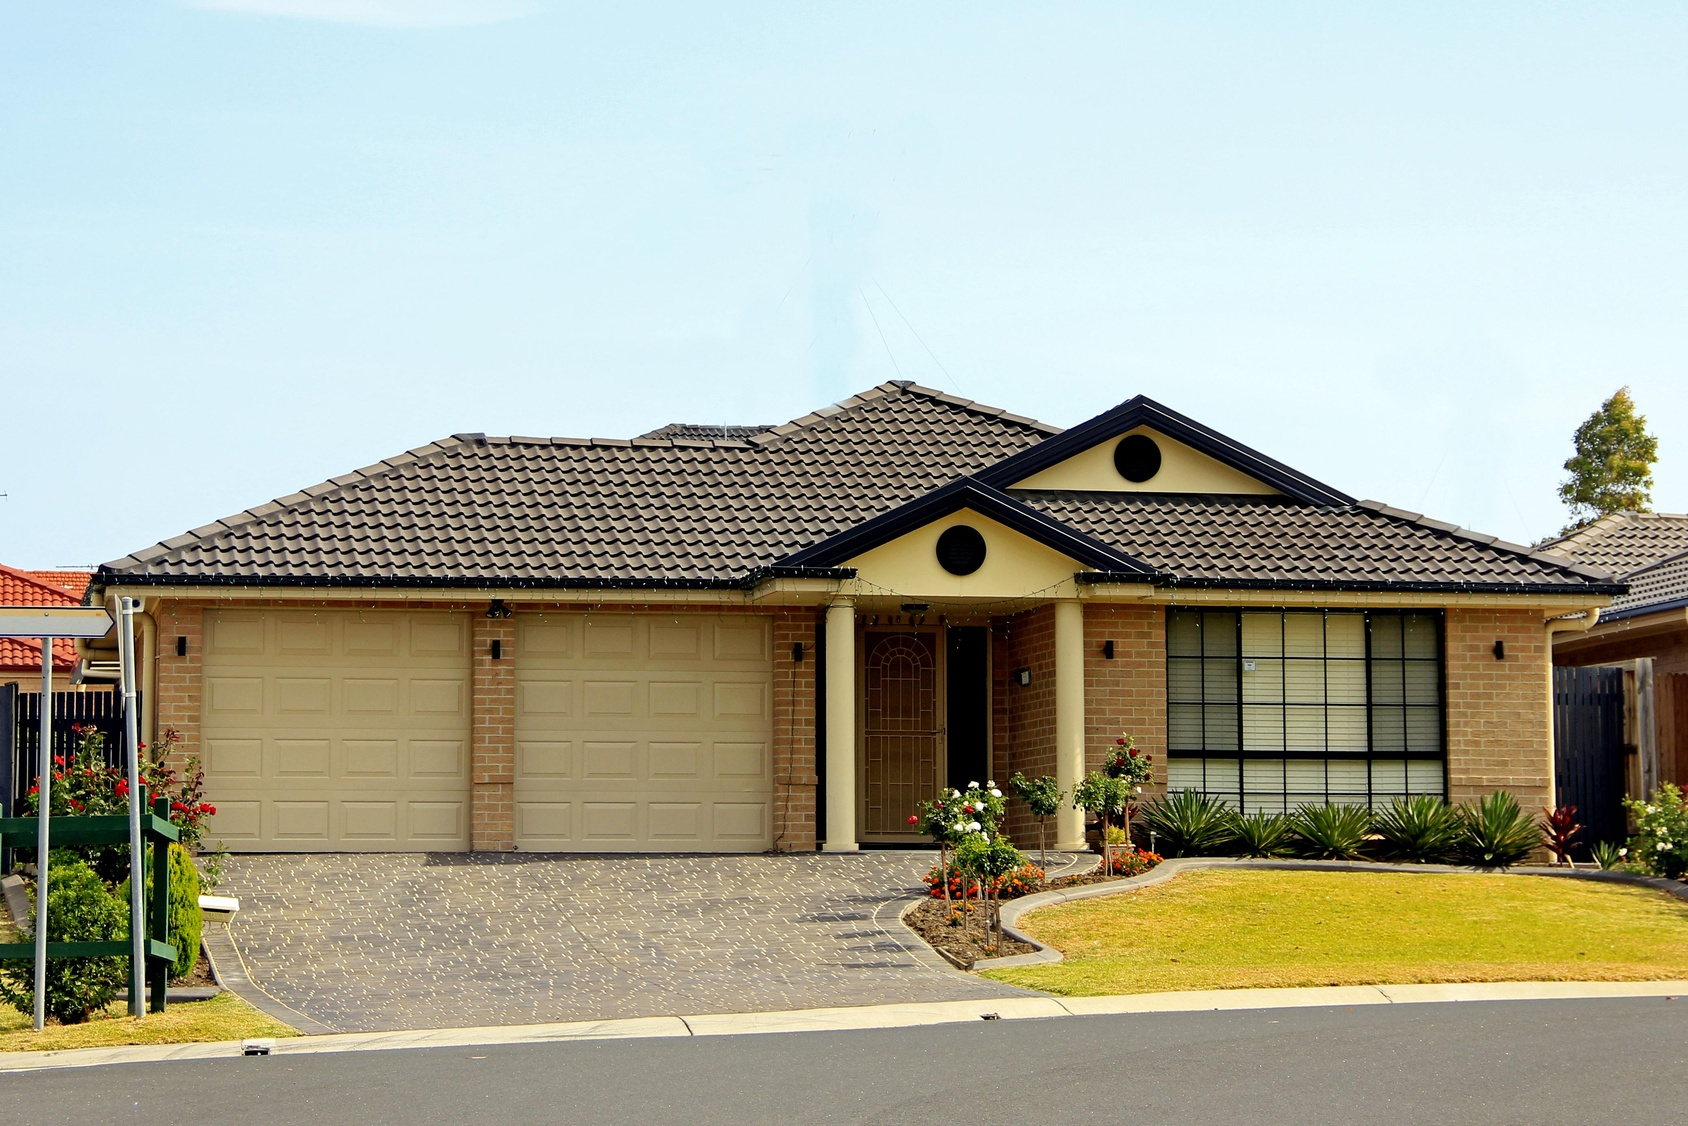 House designs sydney nsw 28 images new home designs for House designs australia